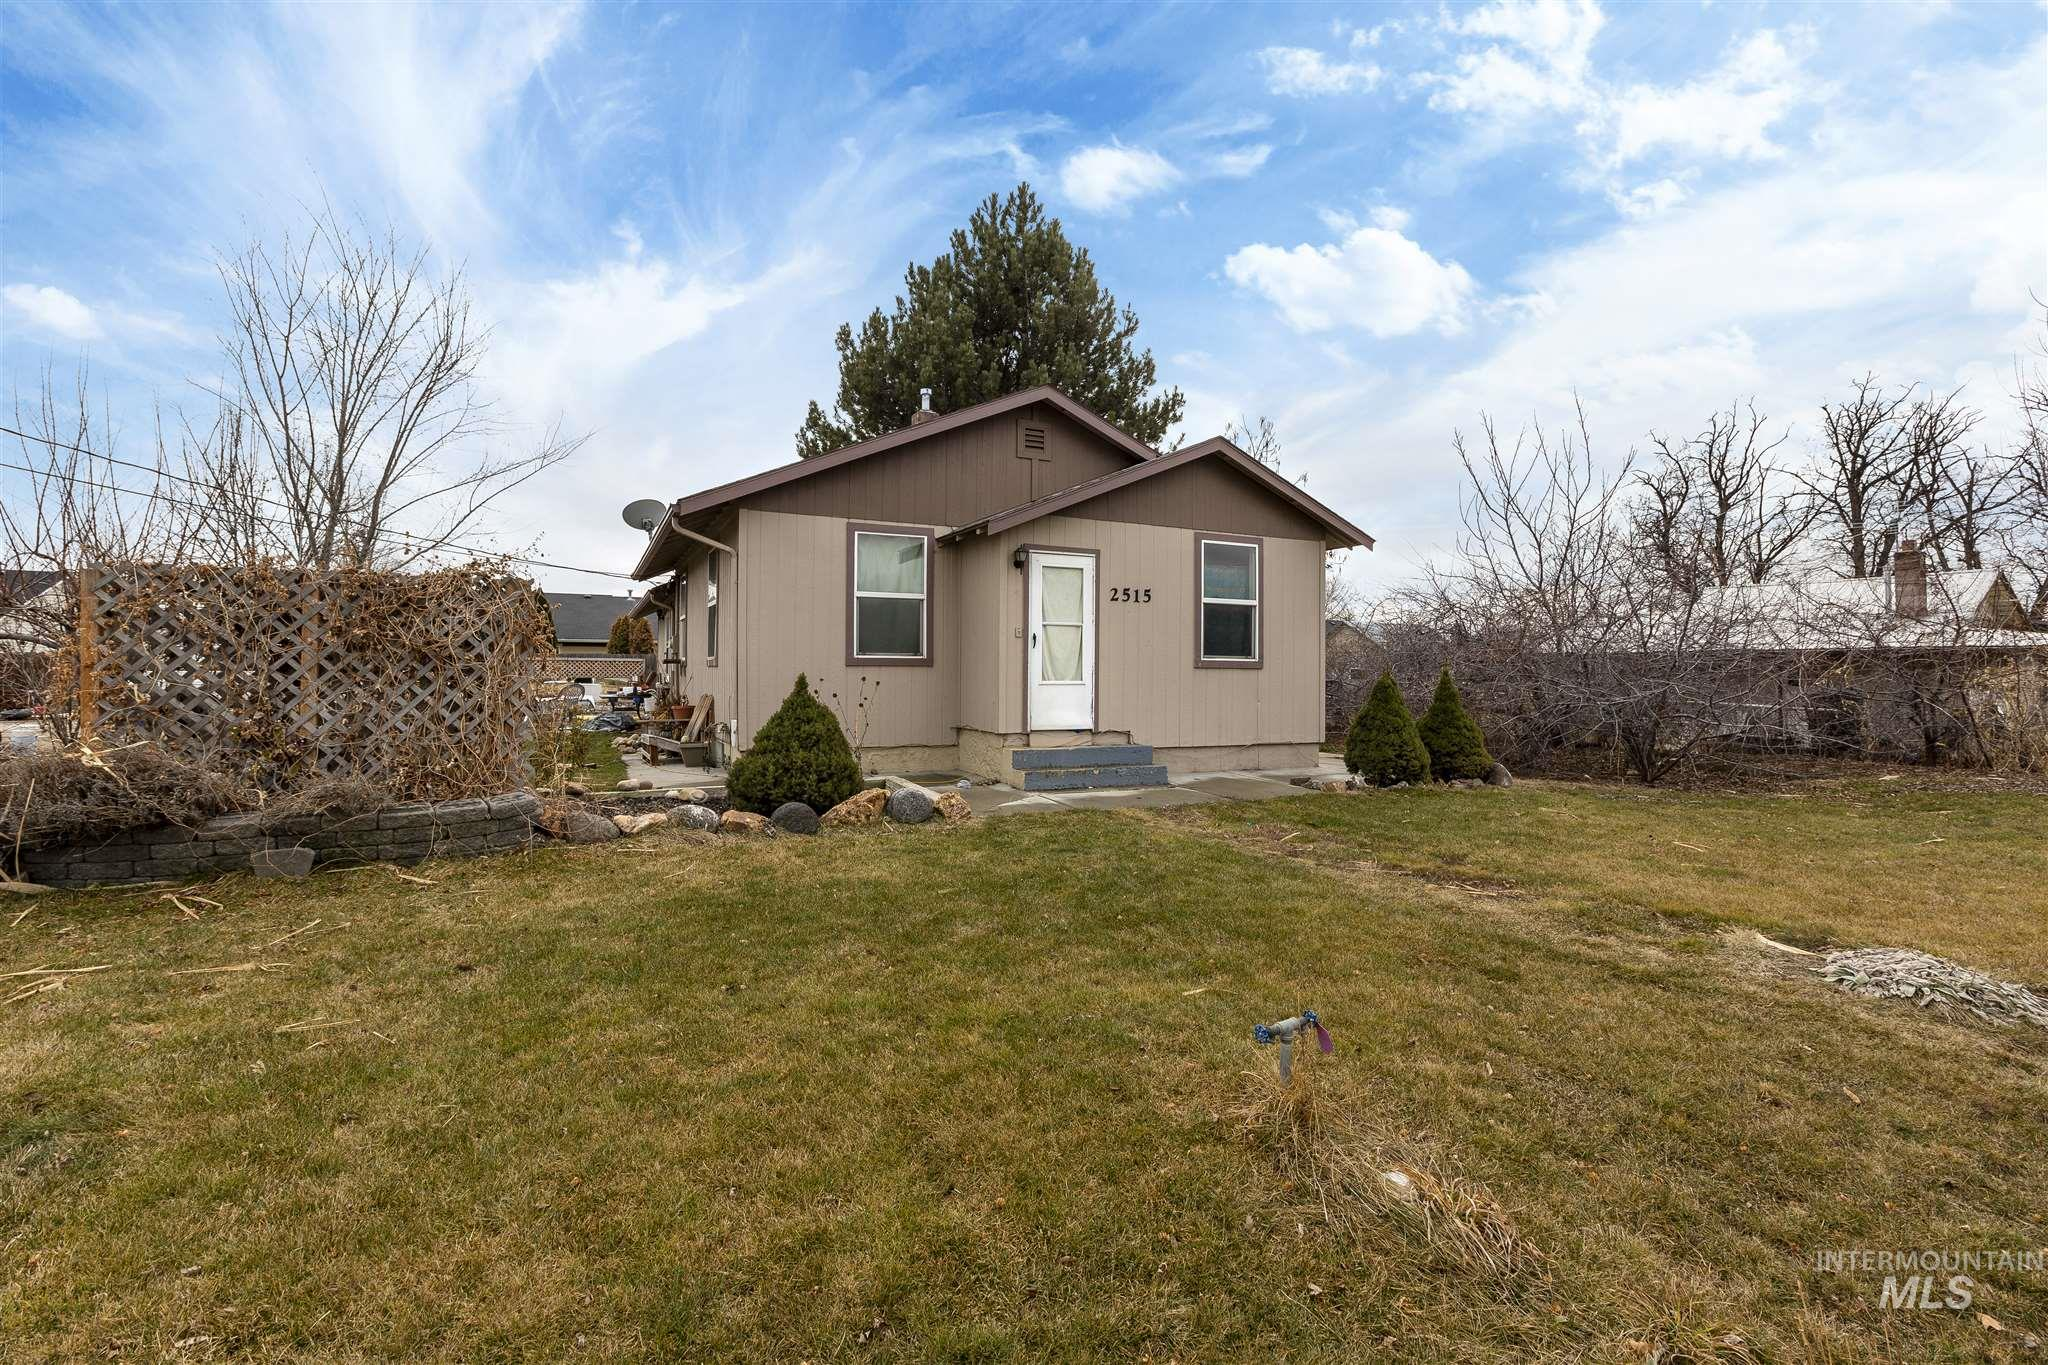 2515 Amity Ave Property Photo - Nampa, ID real estate listing